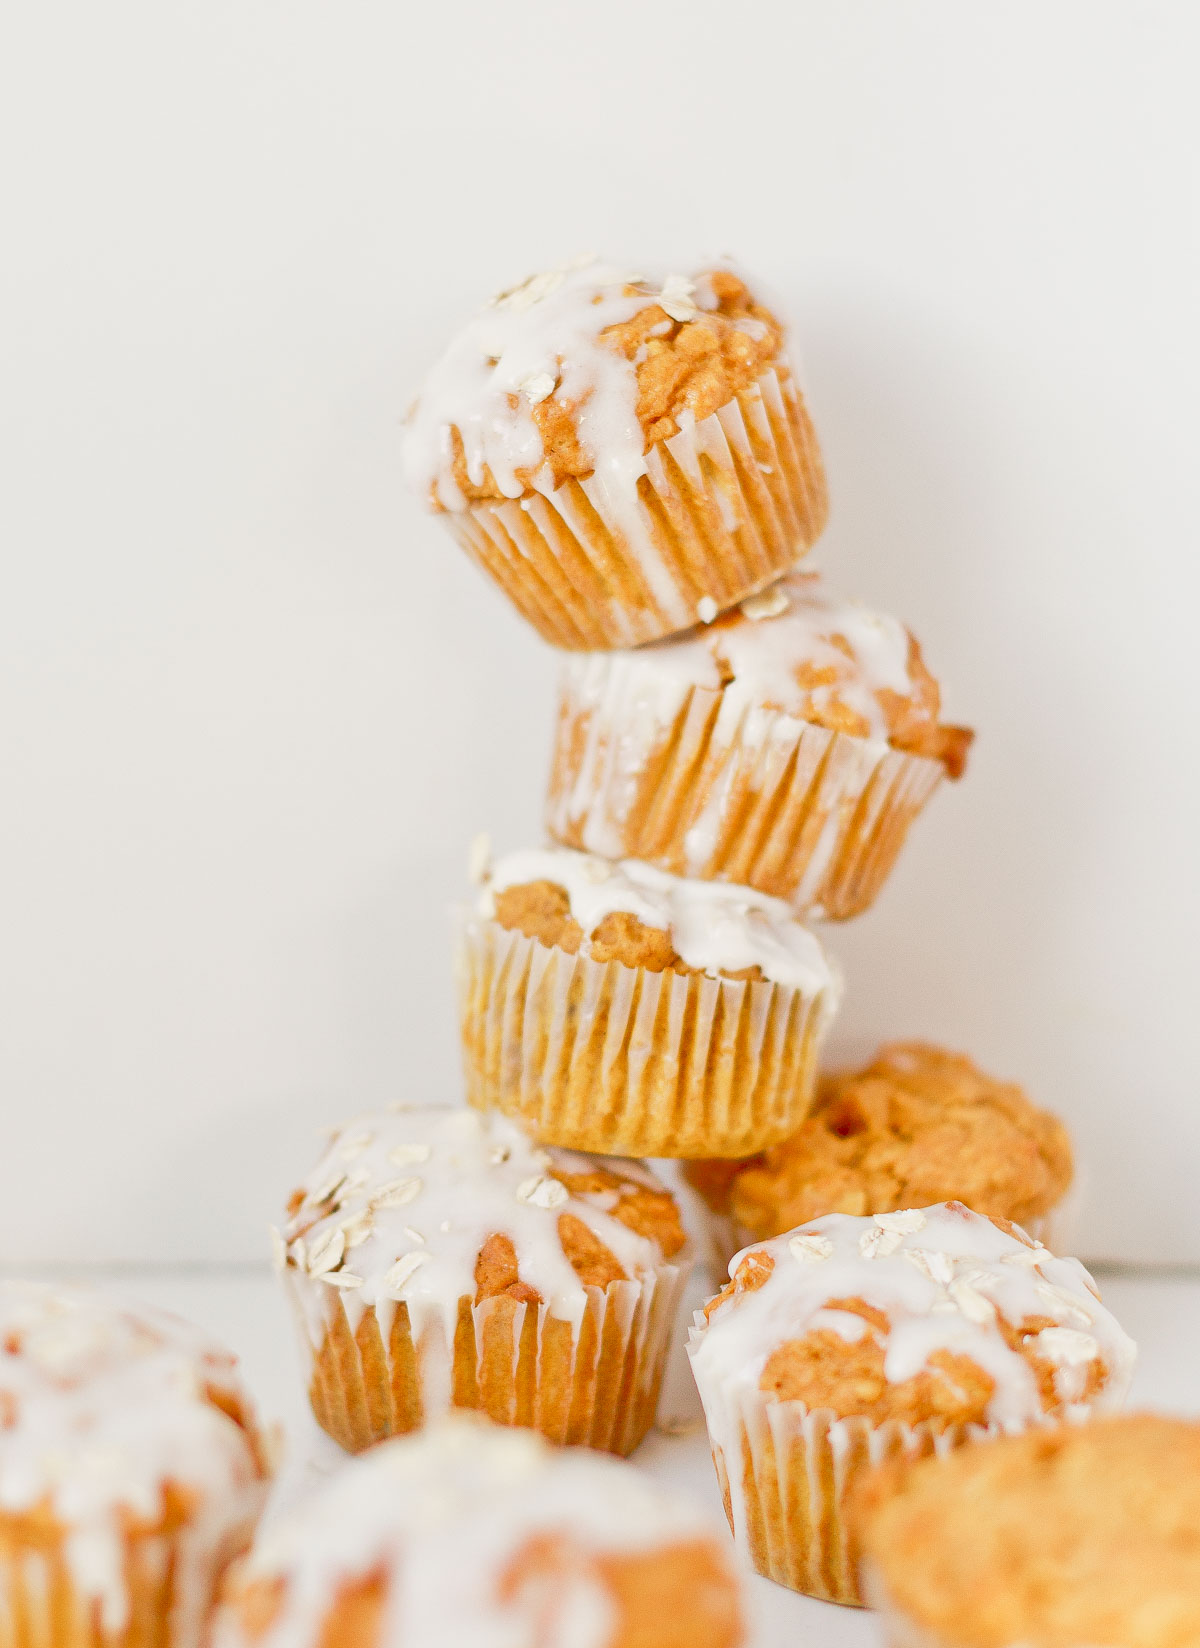 Pumpkin muffins stacked on top of each other, with a cream cheese glaze and oats sprinkled on top.